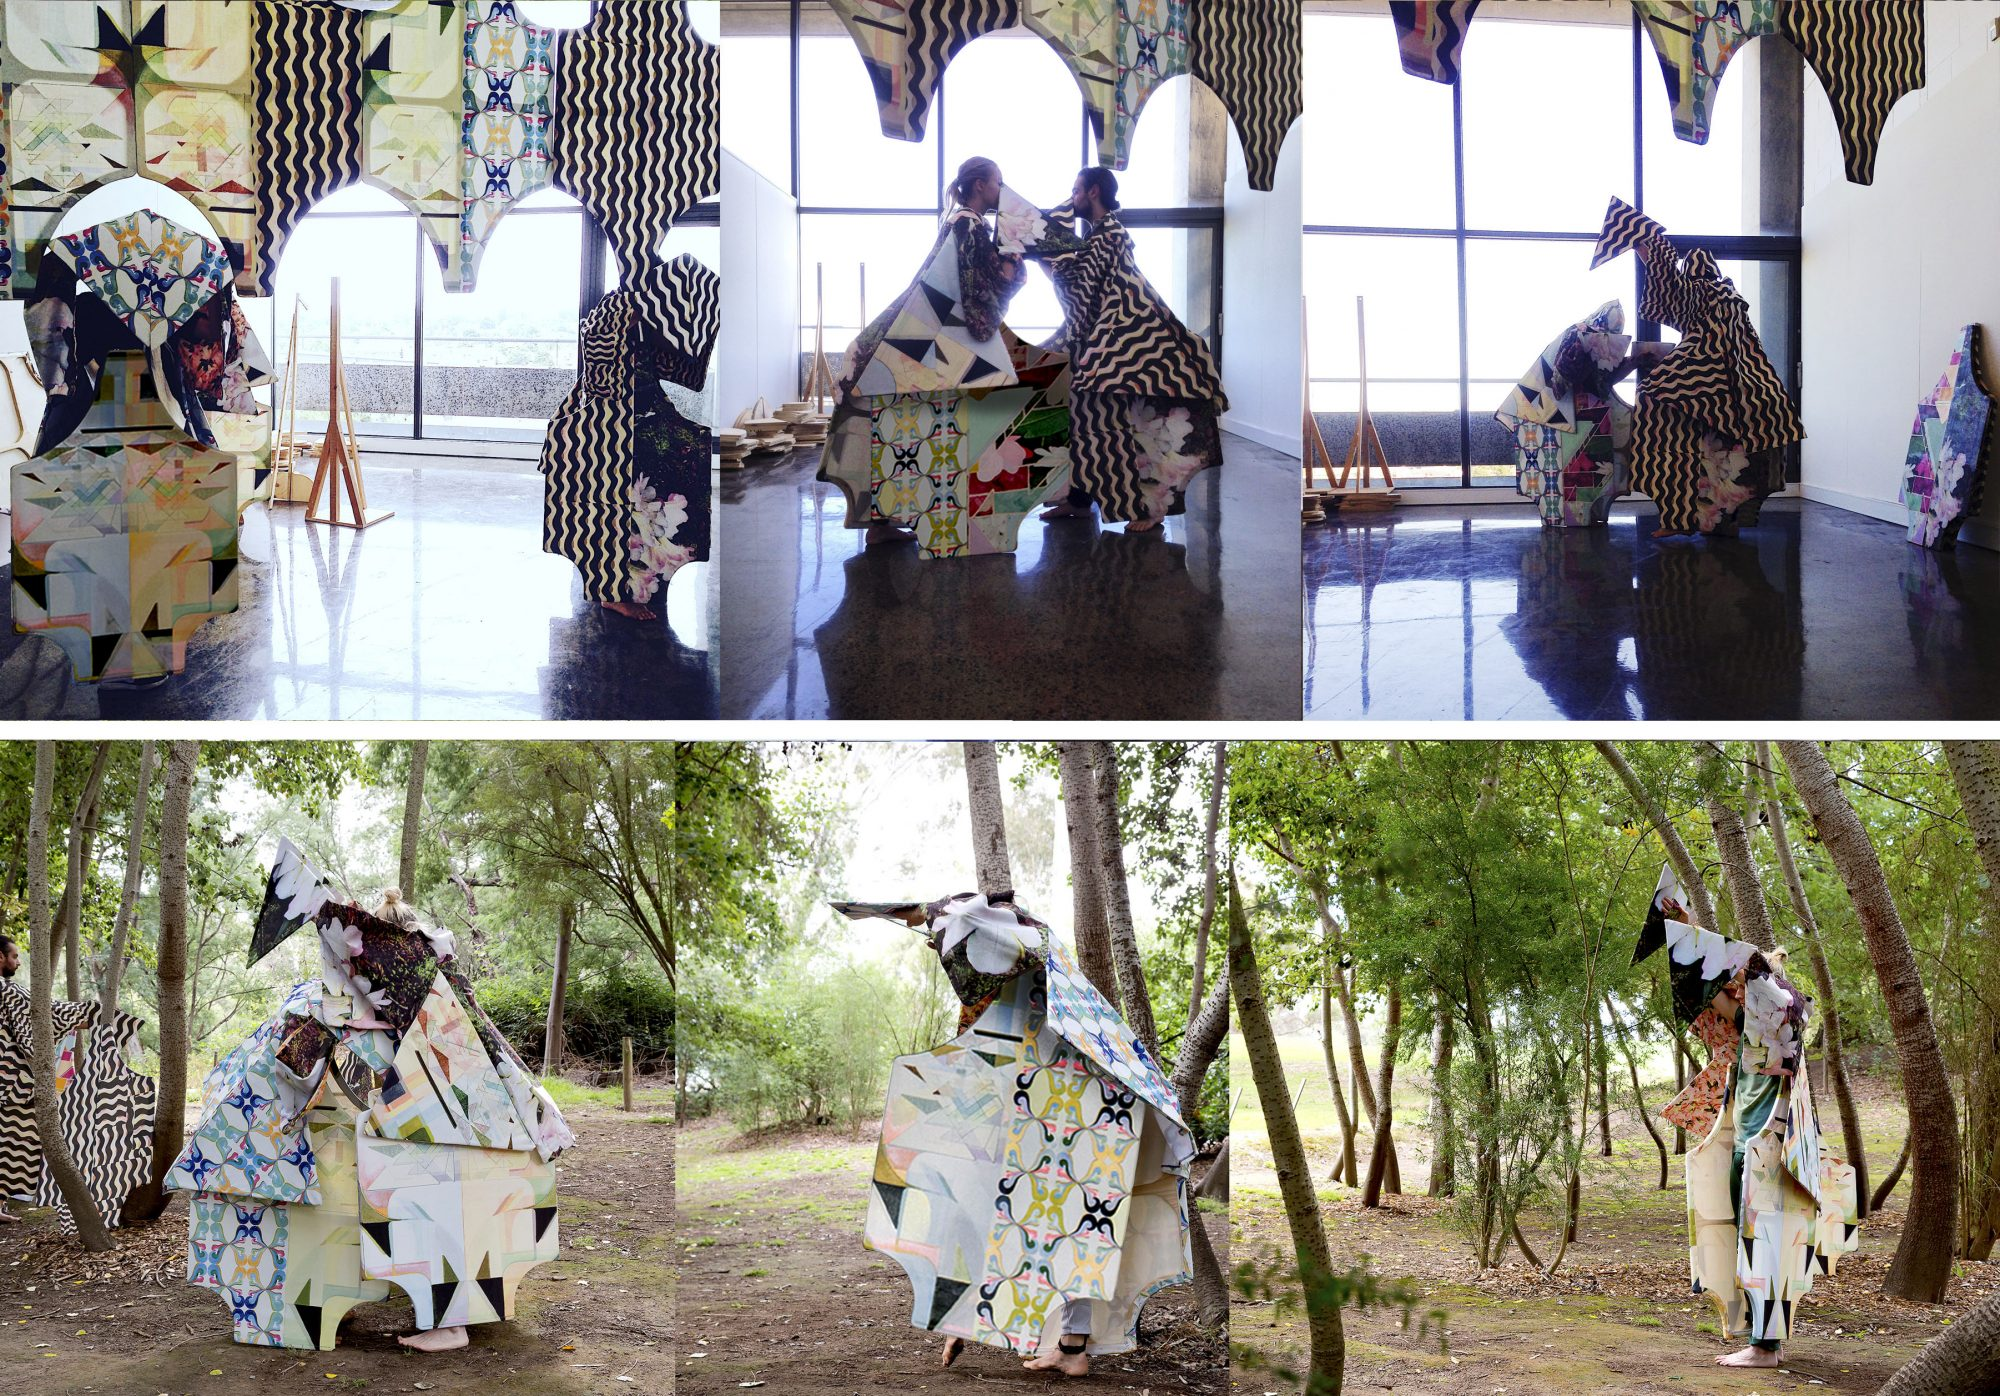 Belle Bassin, artwork, performance, moving sculpture, dance, performance